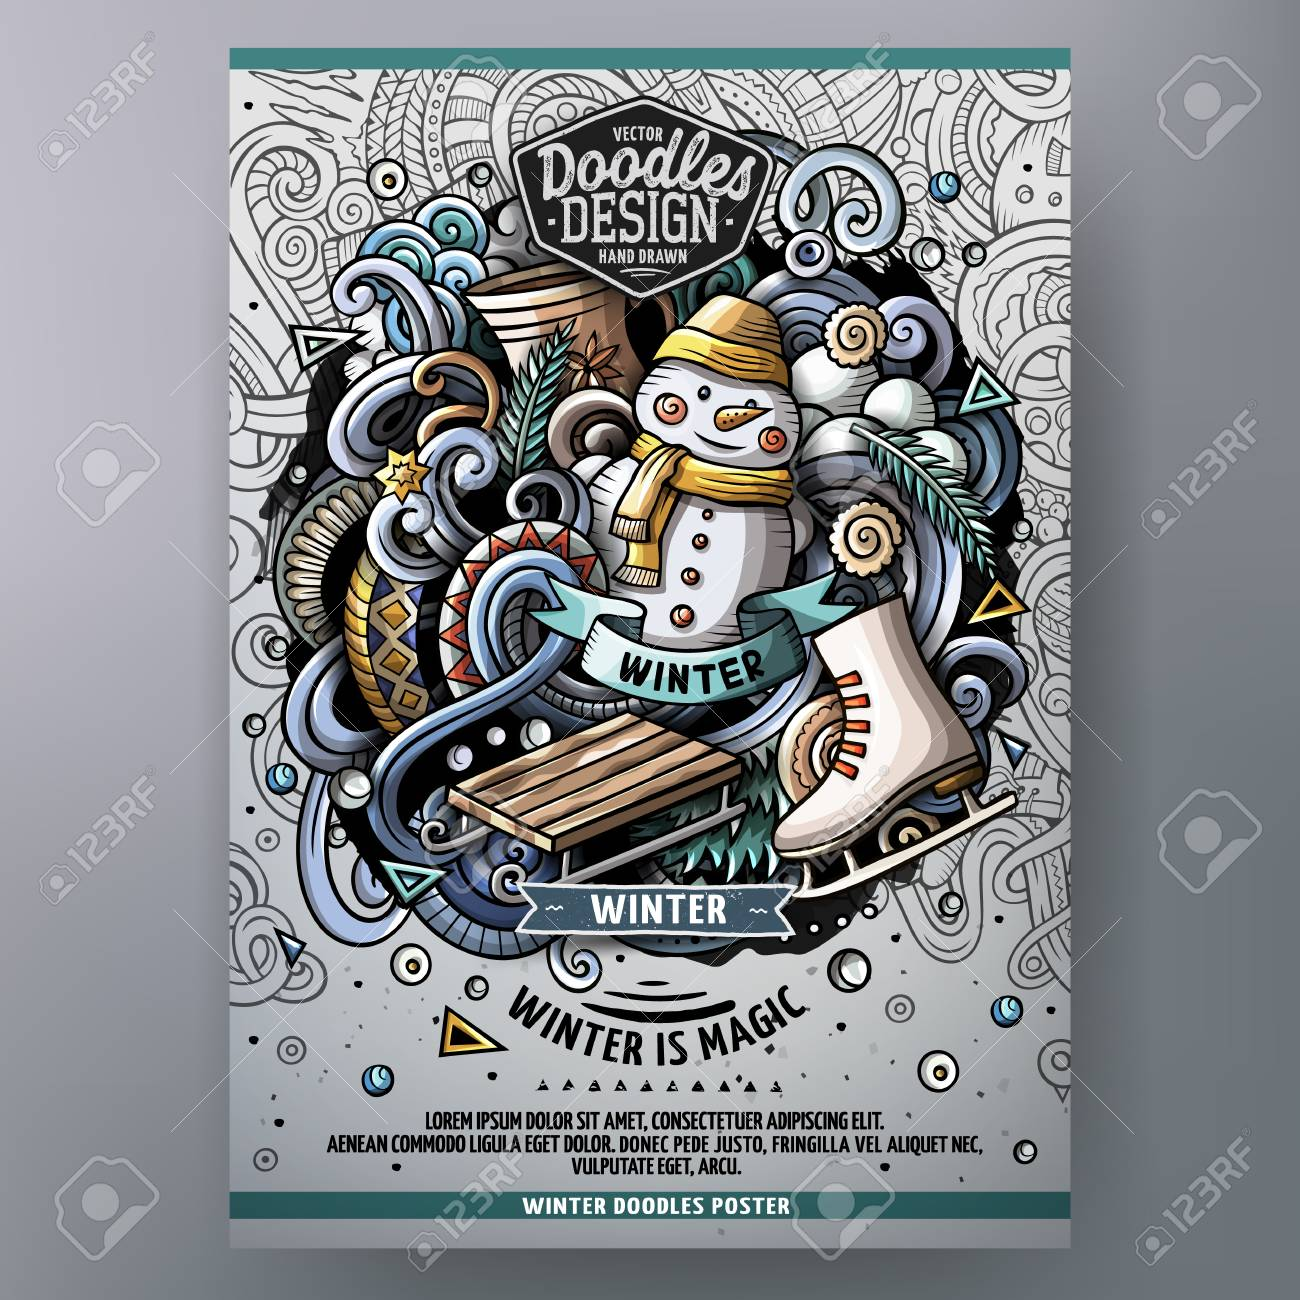 Cartoon hand drawn doodles Winter poster design template. Very detailed, with lots of separate objects illustration. Funny vector artwork. - 90846135